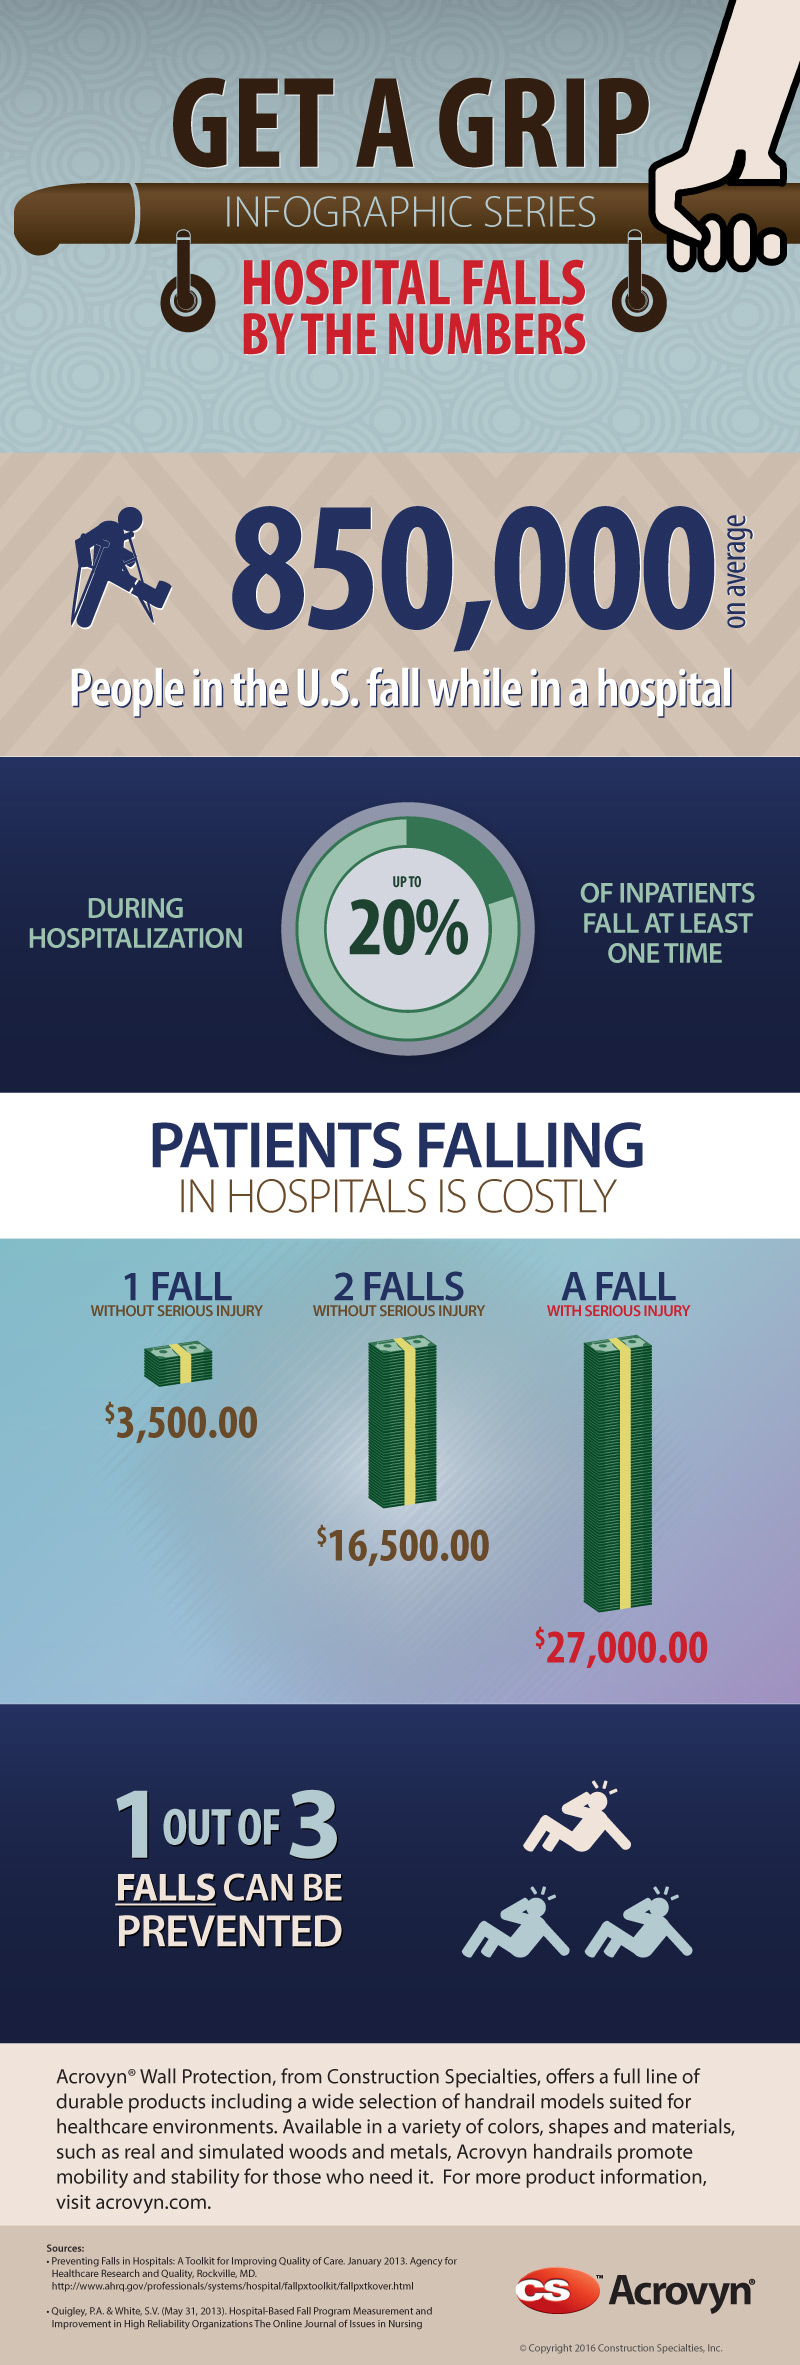 Get A Grip Infographic Series: Hospital Falls By The Numbers